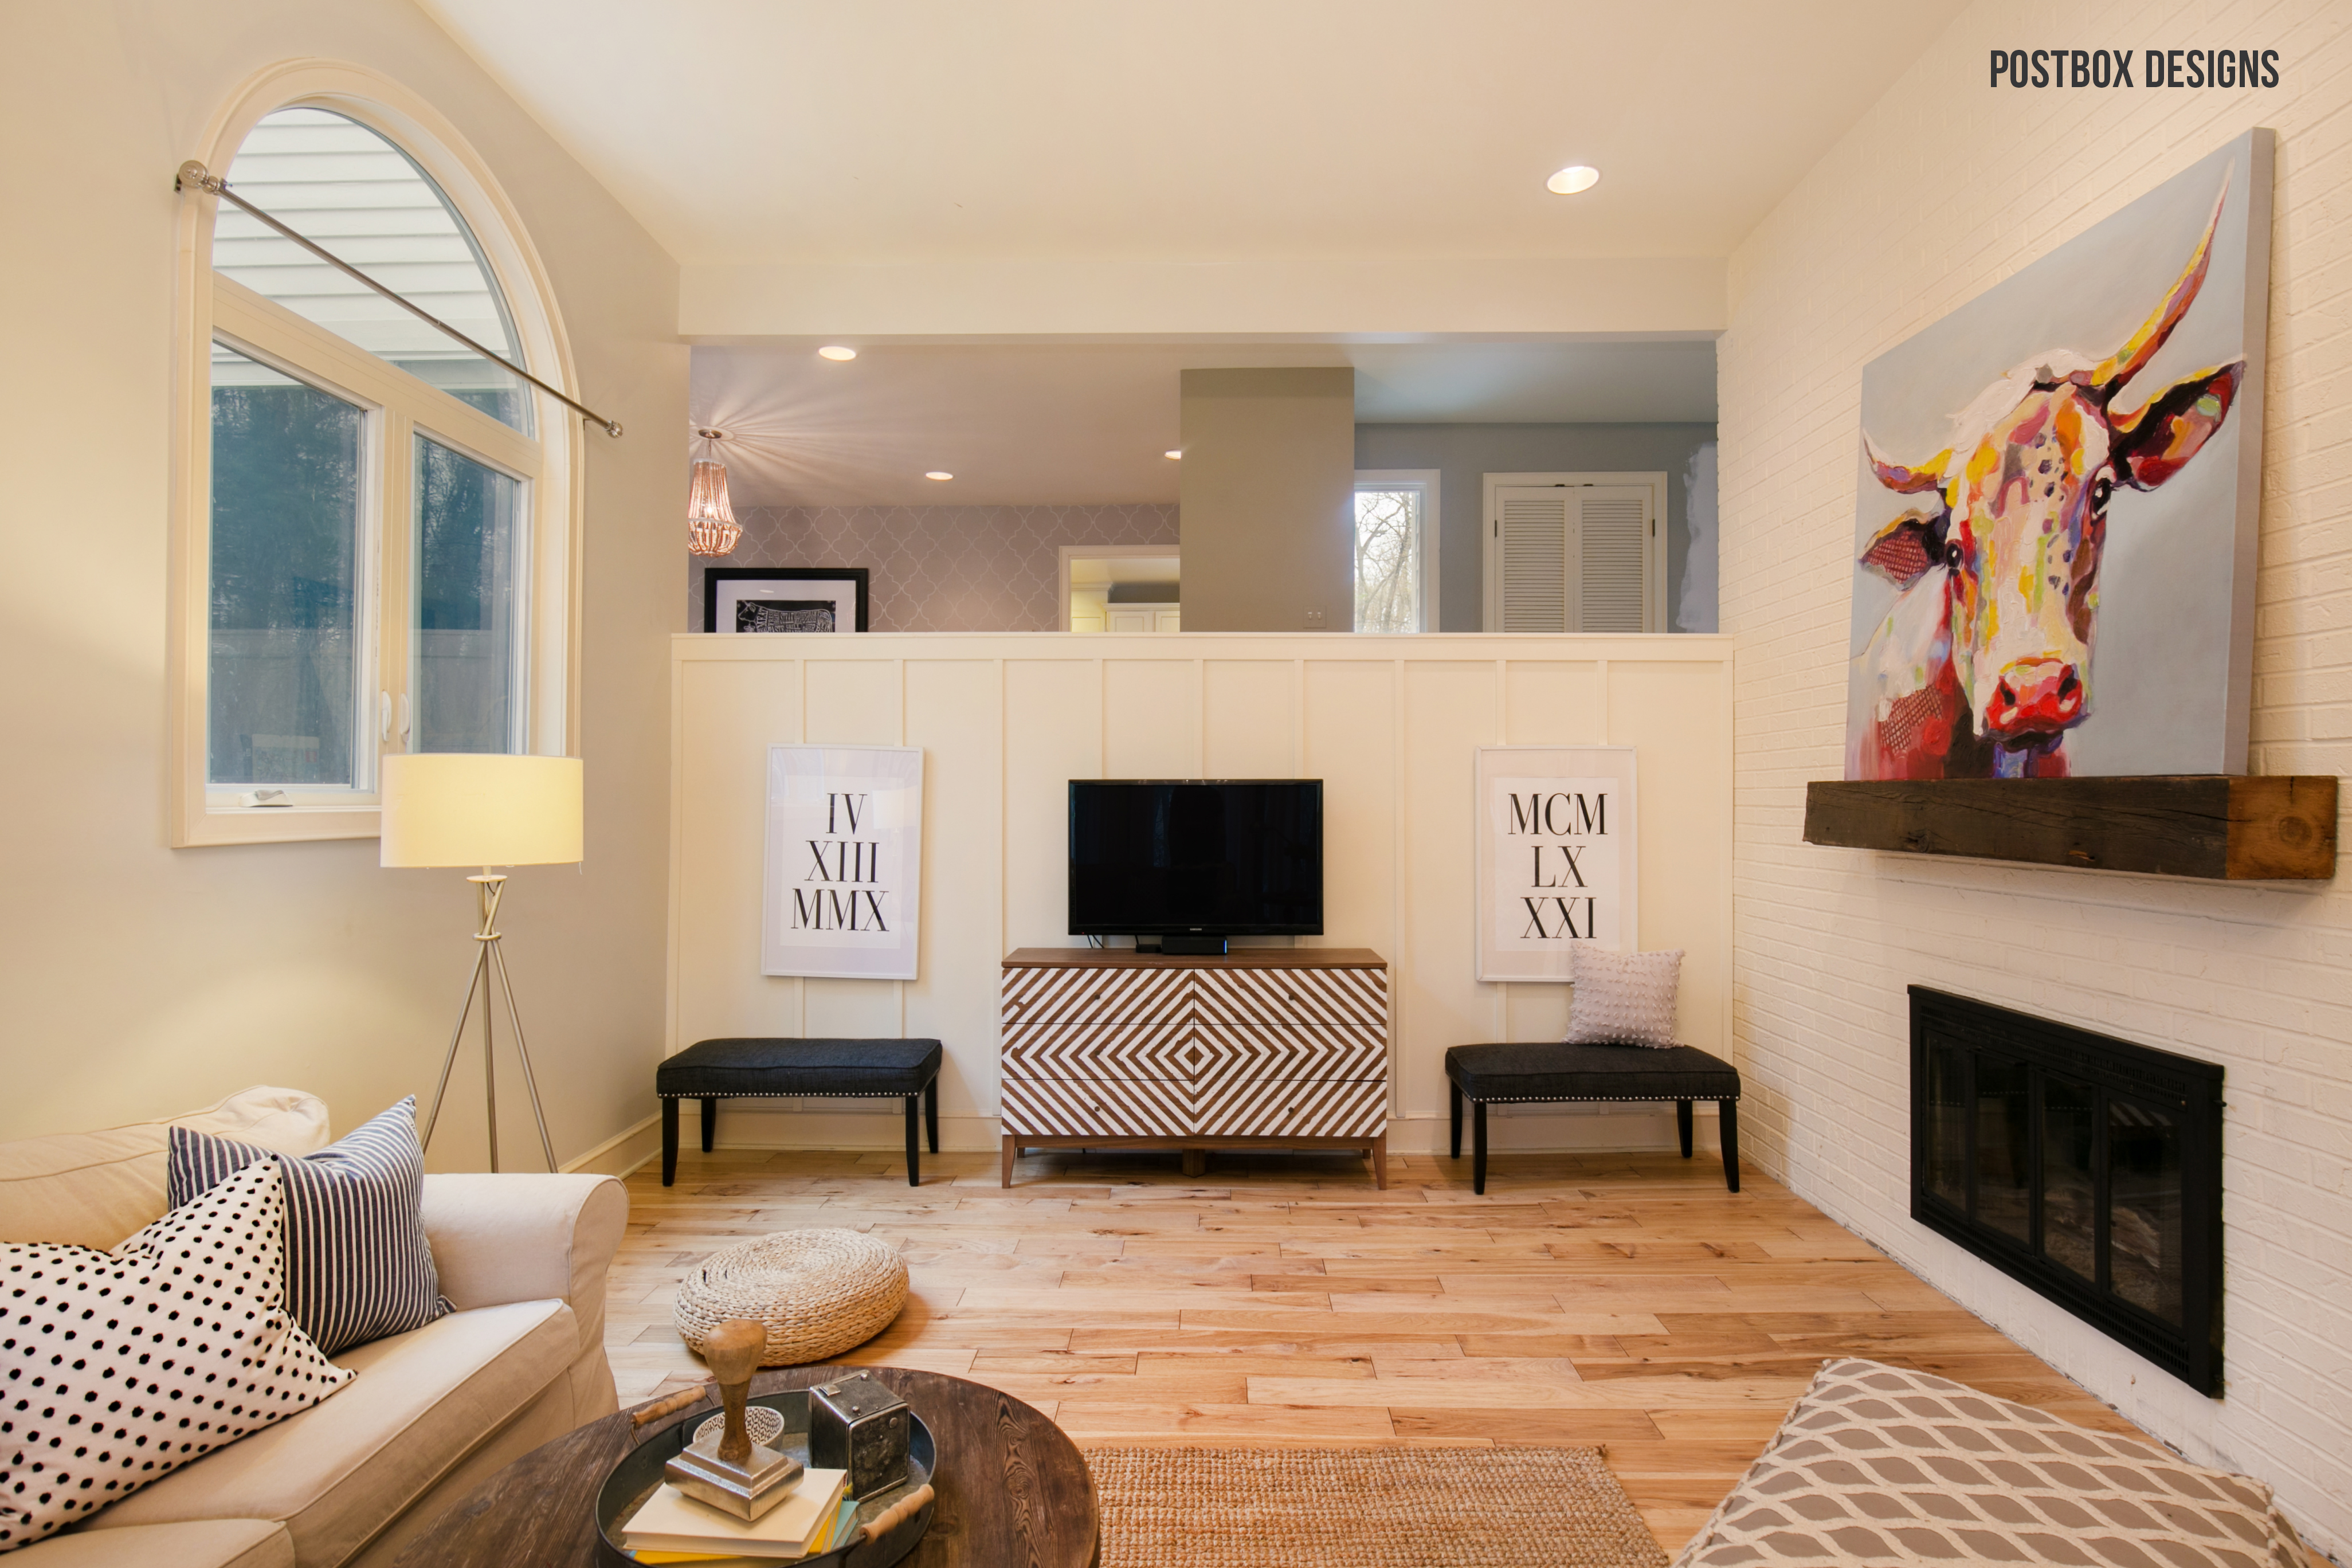 Postbox Designs: Farmhouse Family Room for One Room Challenge: Room Makeover Reveal! Fixer Upper Style Living Room